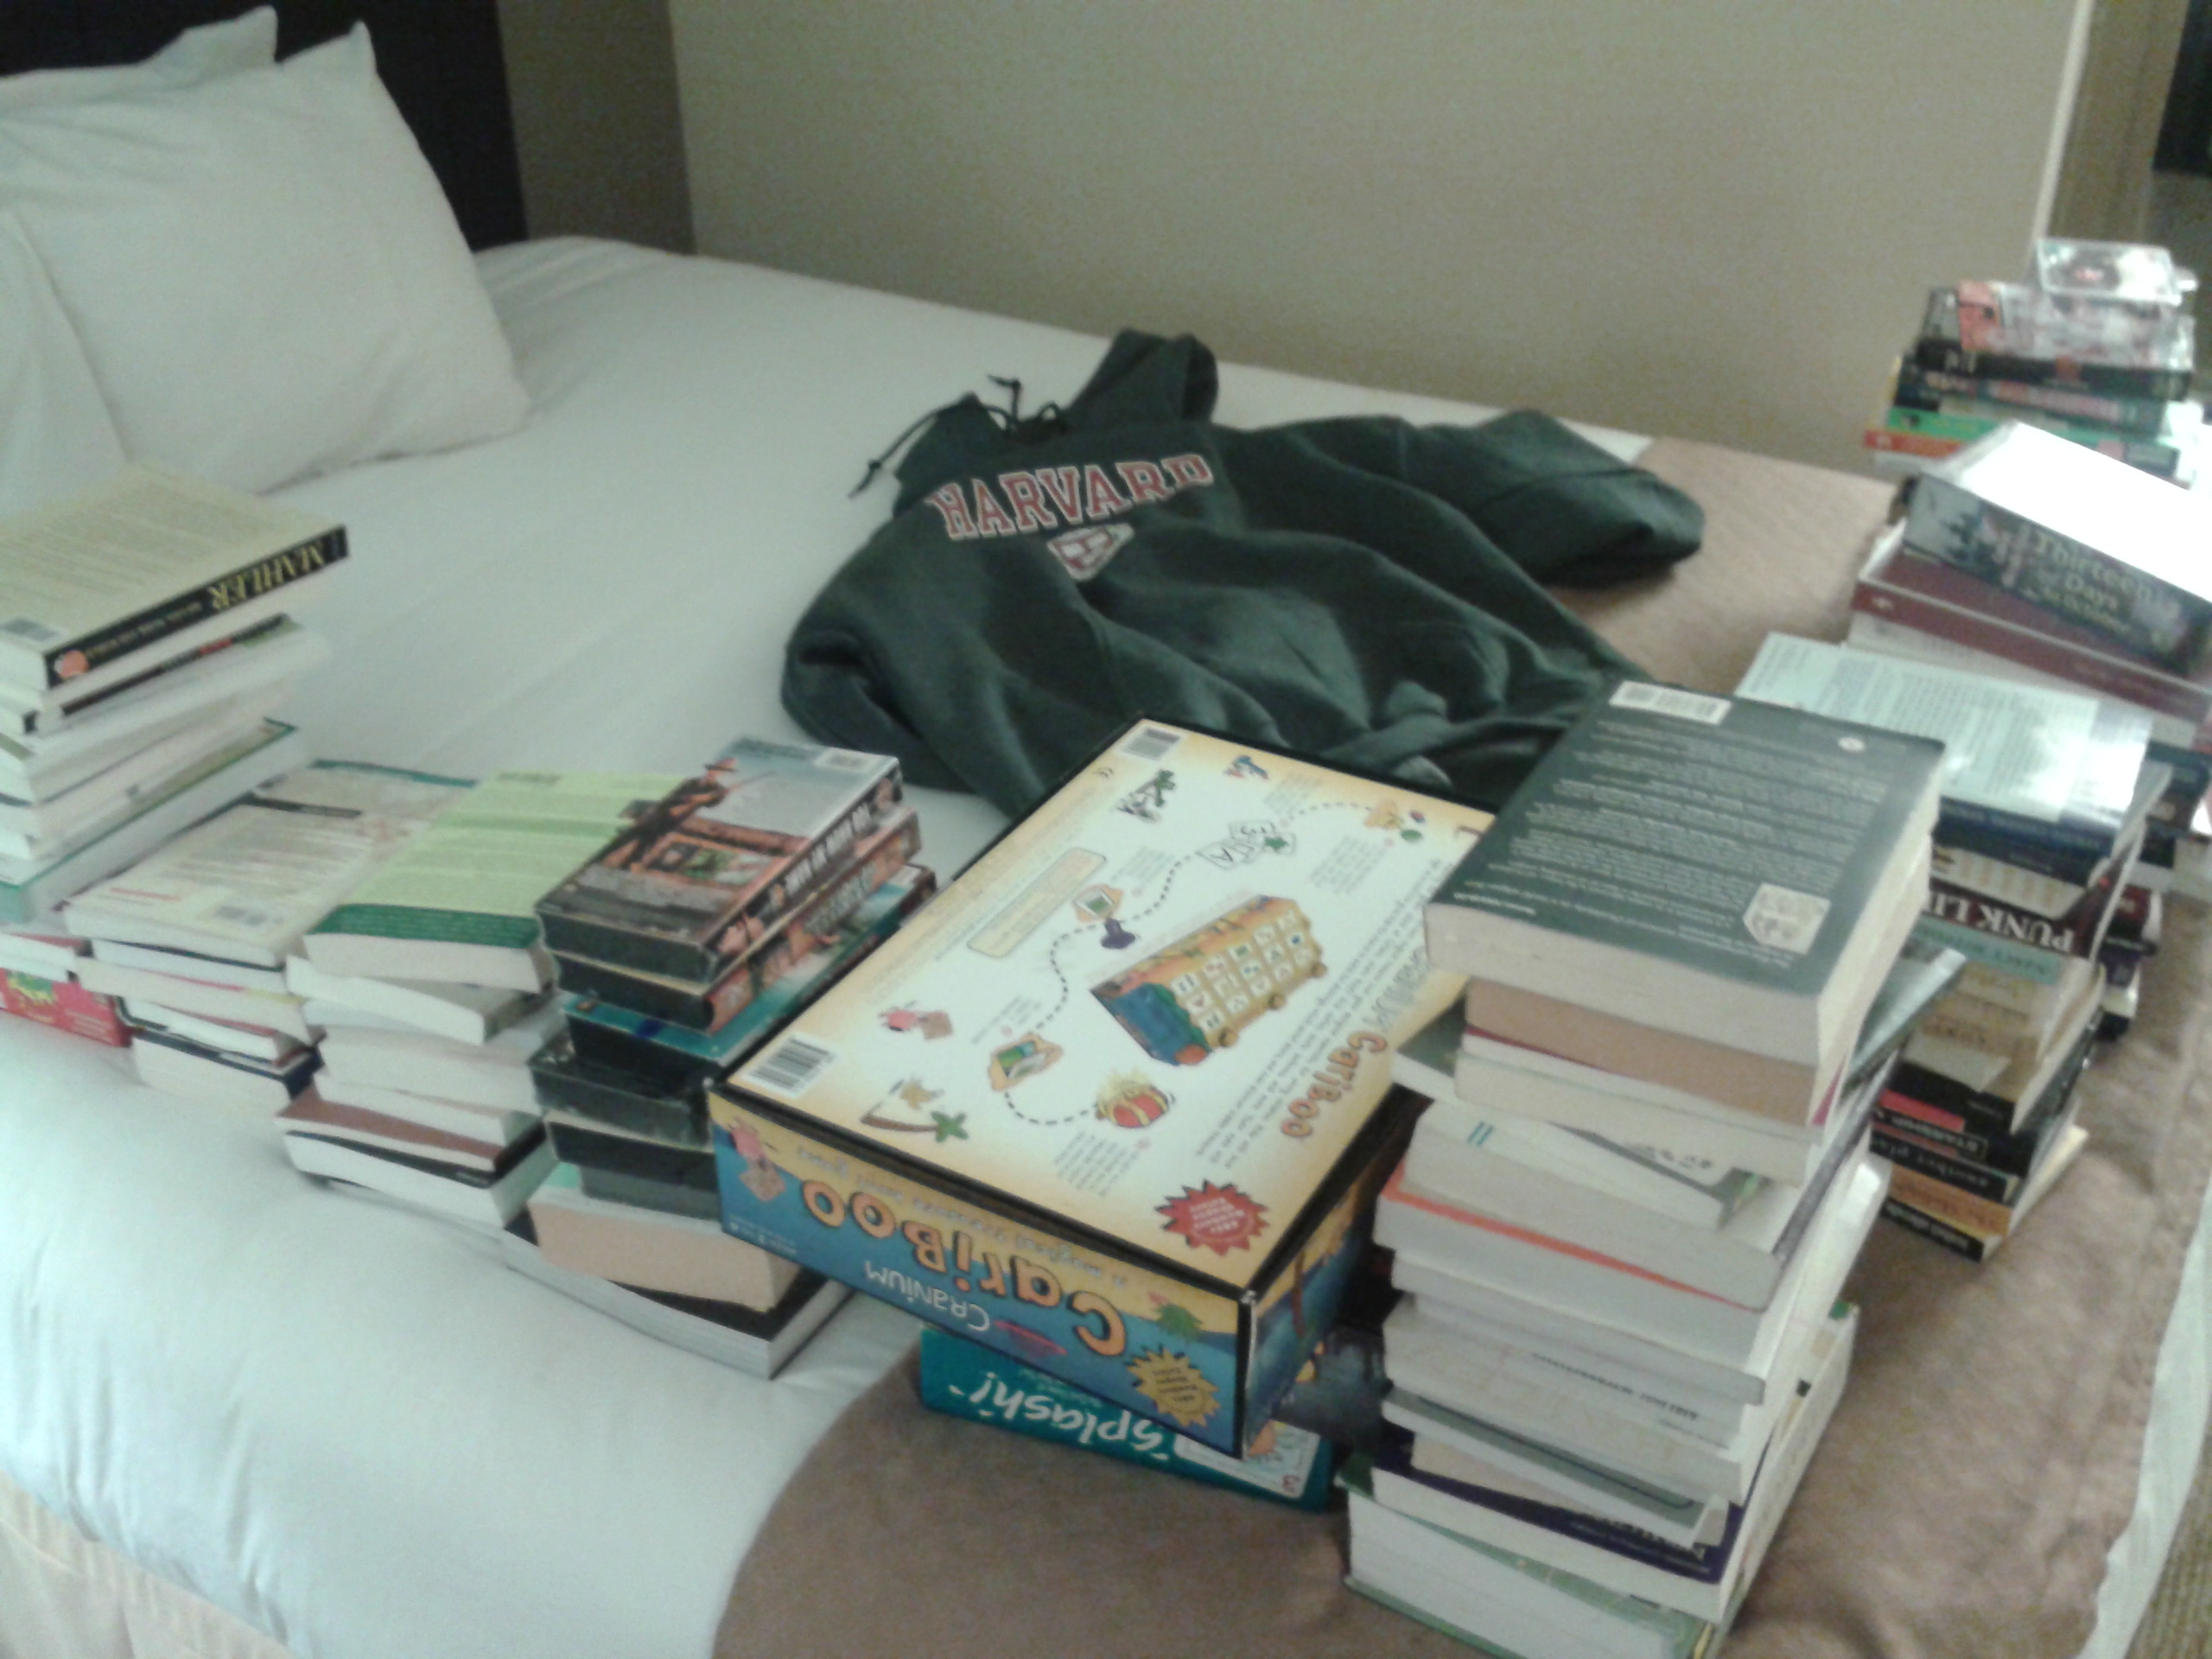 Listing books, VHS, and games in a motel room near Cambridge, Massachusetts.